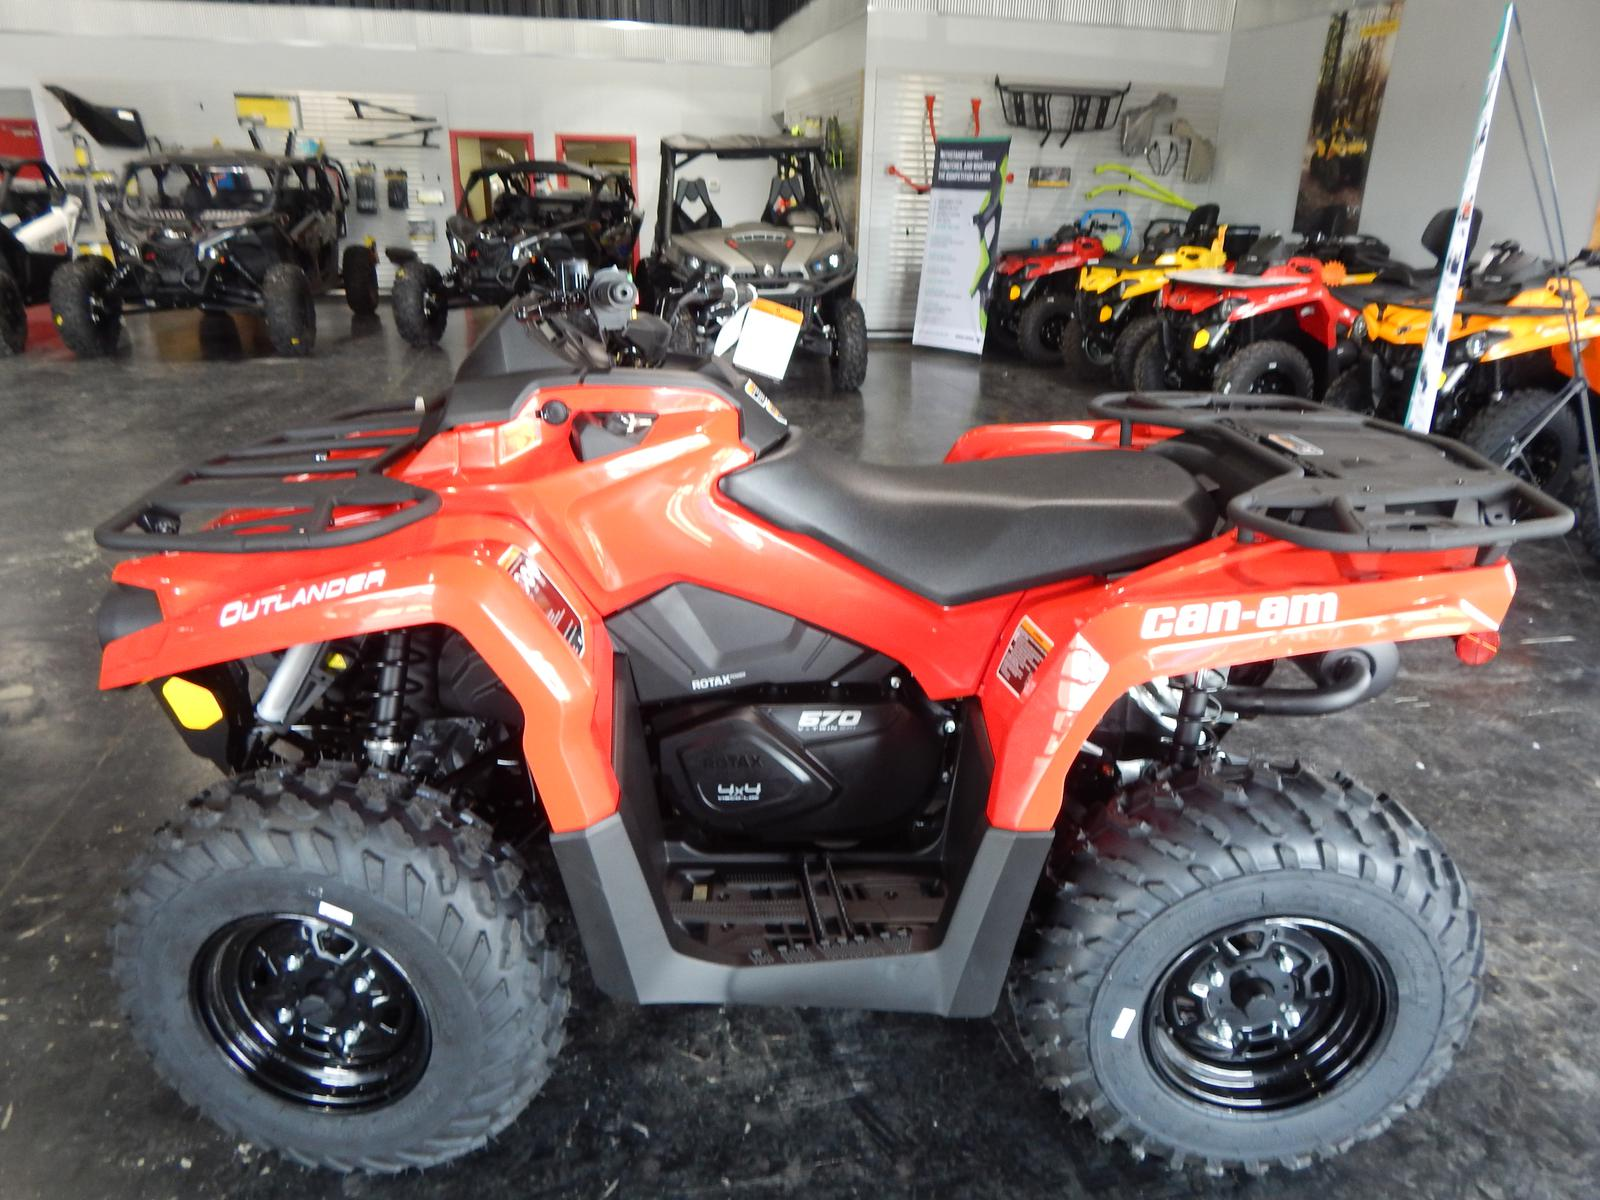 2018 can am outlander 570 for sale in morehead ky cave run motorsports [ 1600 x 1200 Pixel ]